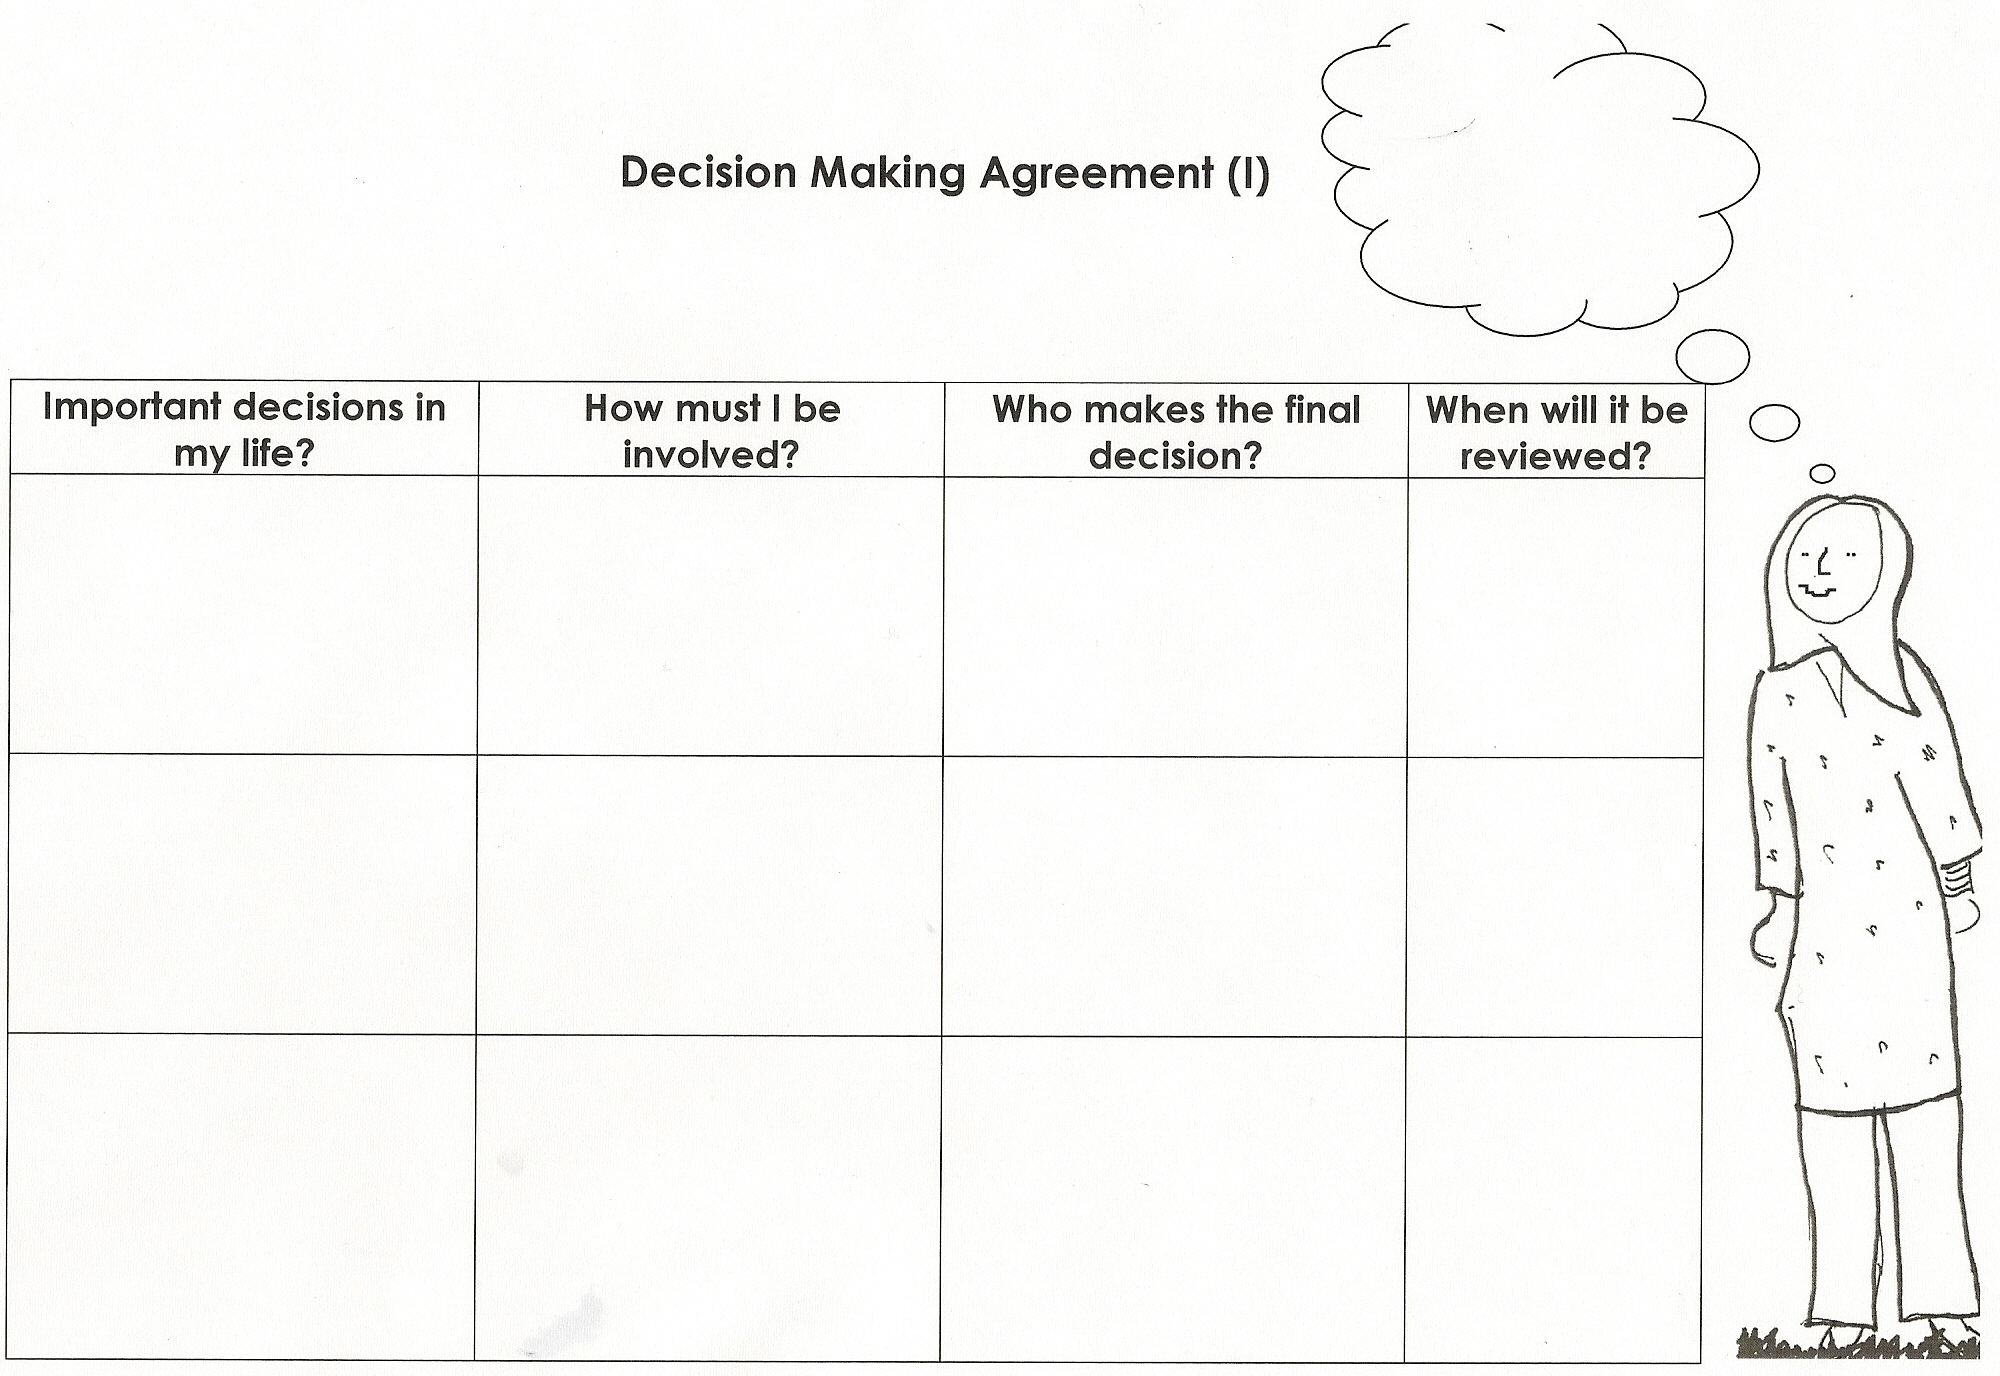 Decision Making Agreement